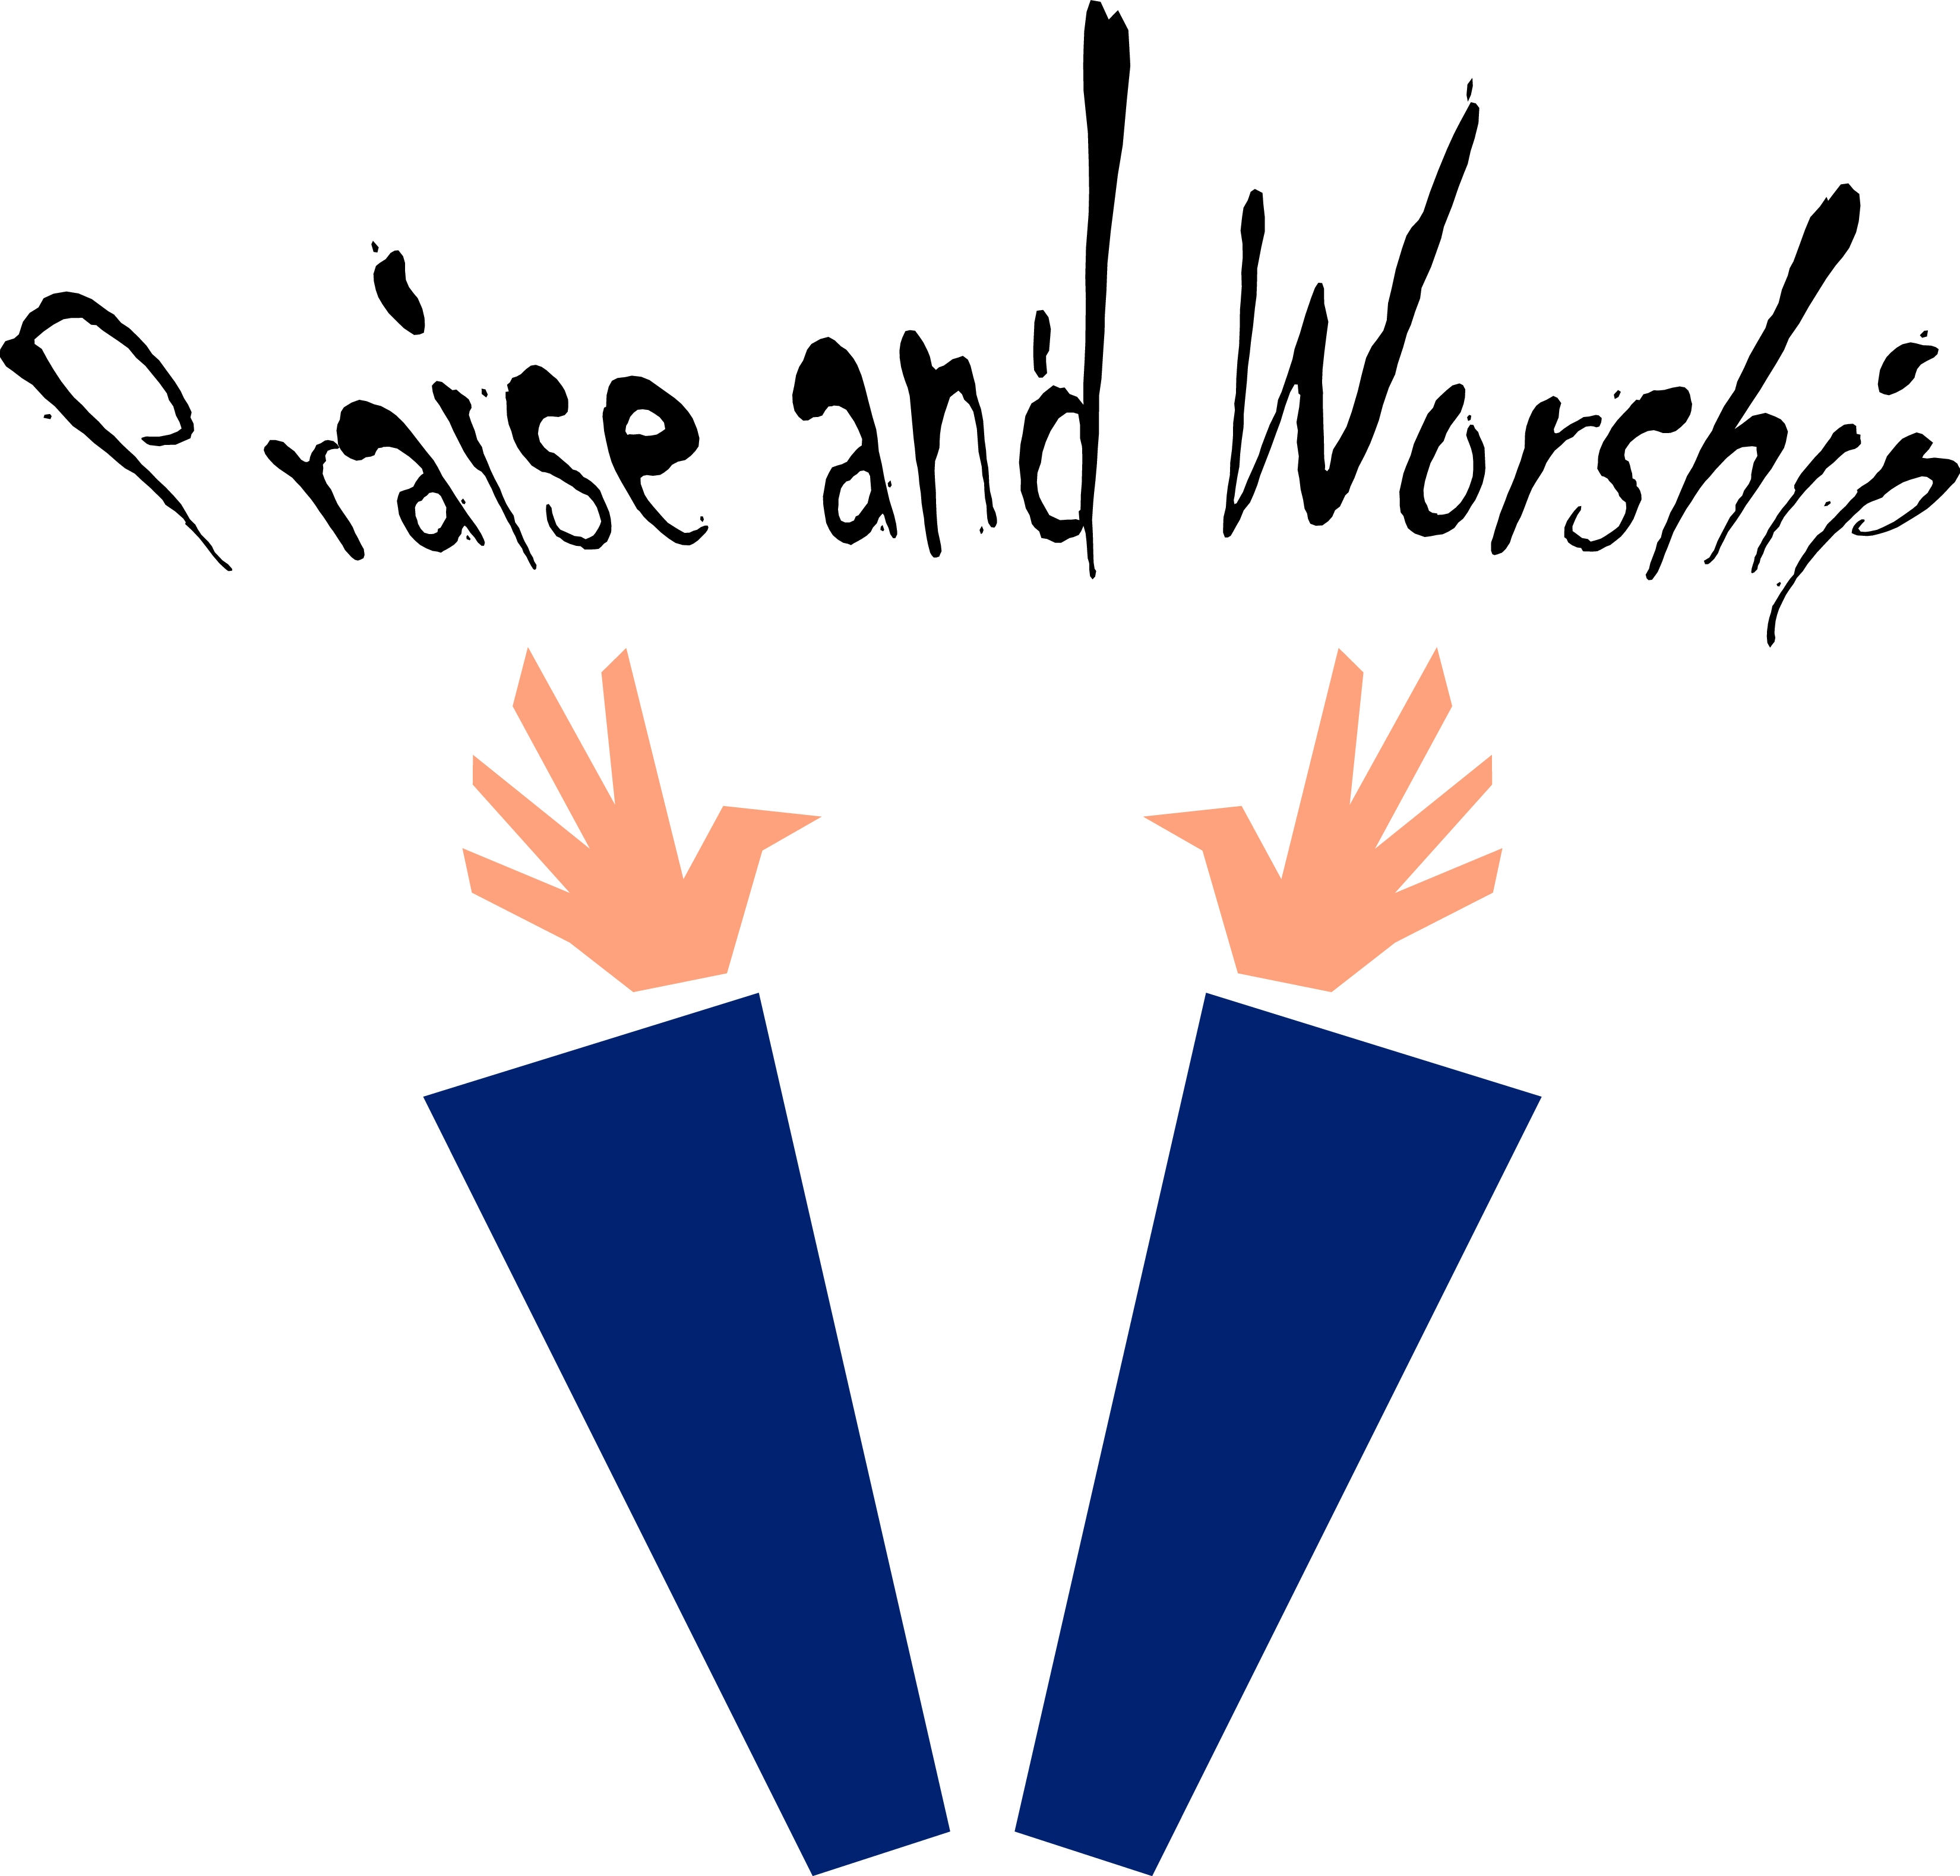 Christian Praise And Worship Clip Art Clipart Best